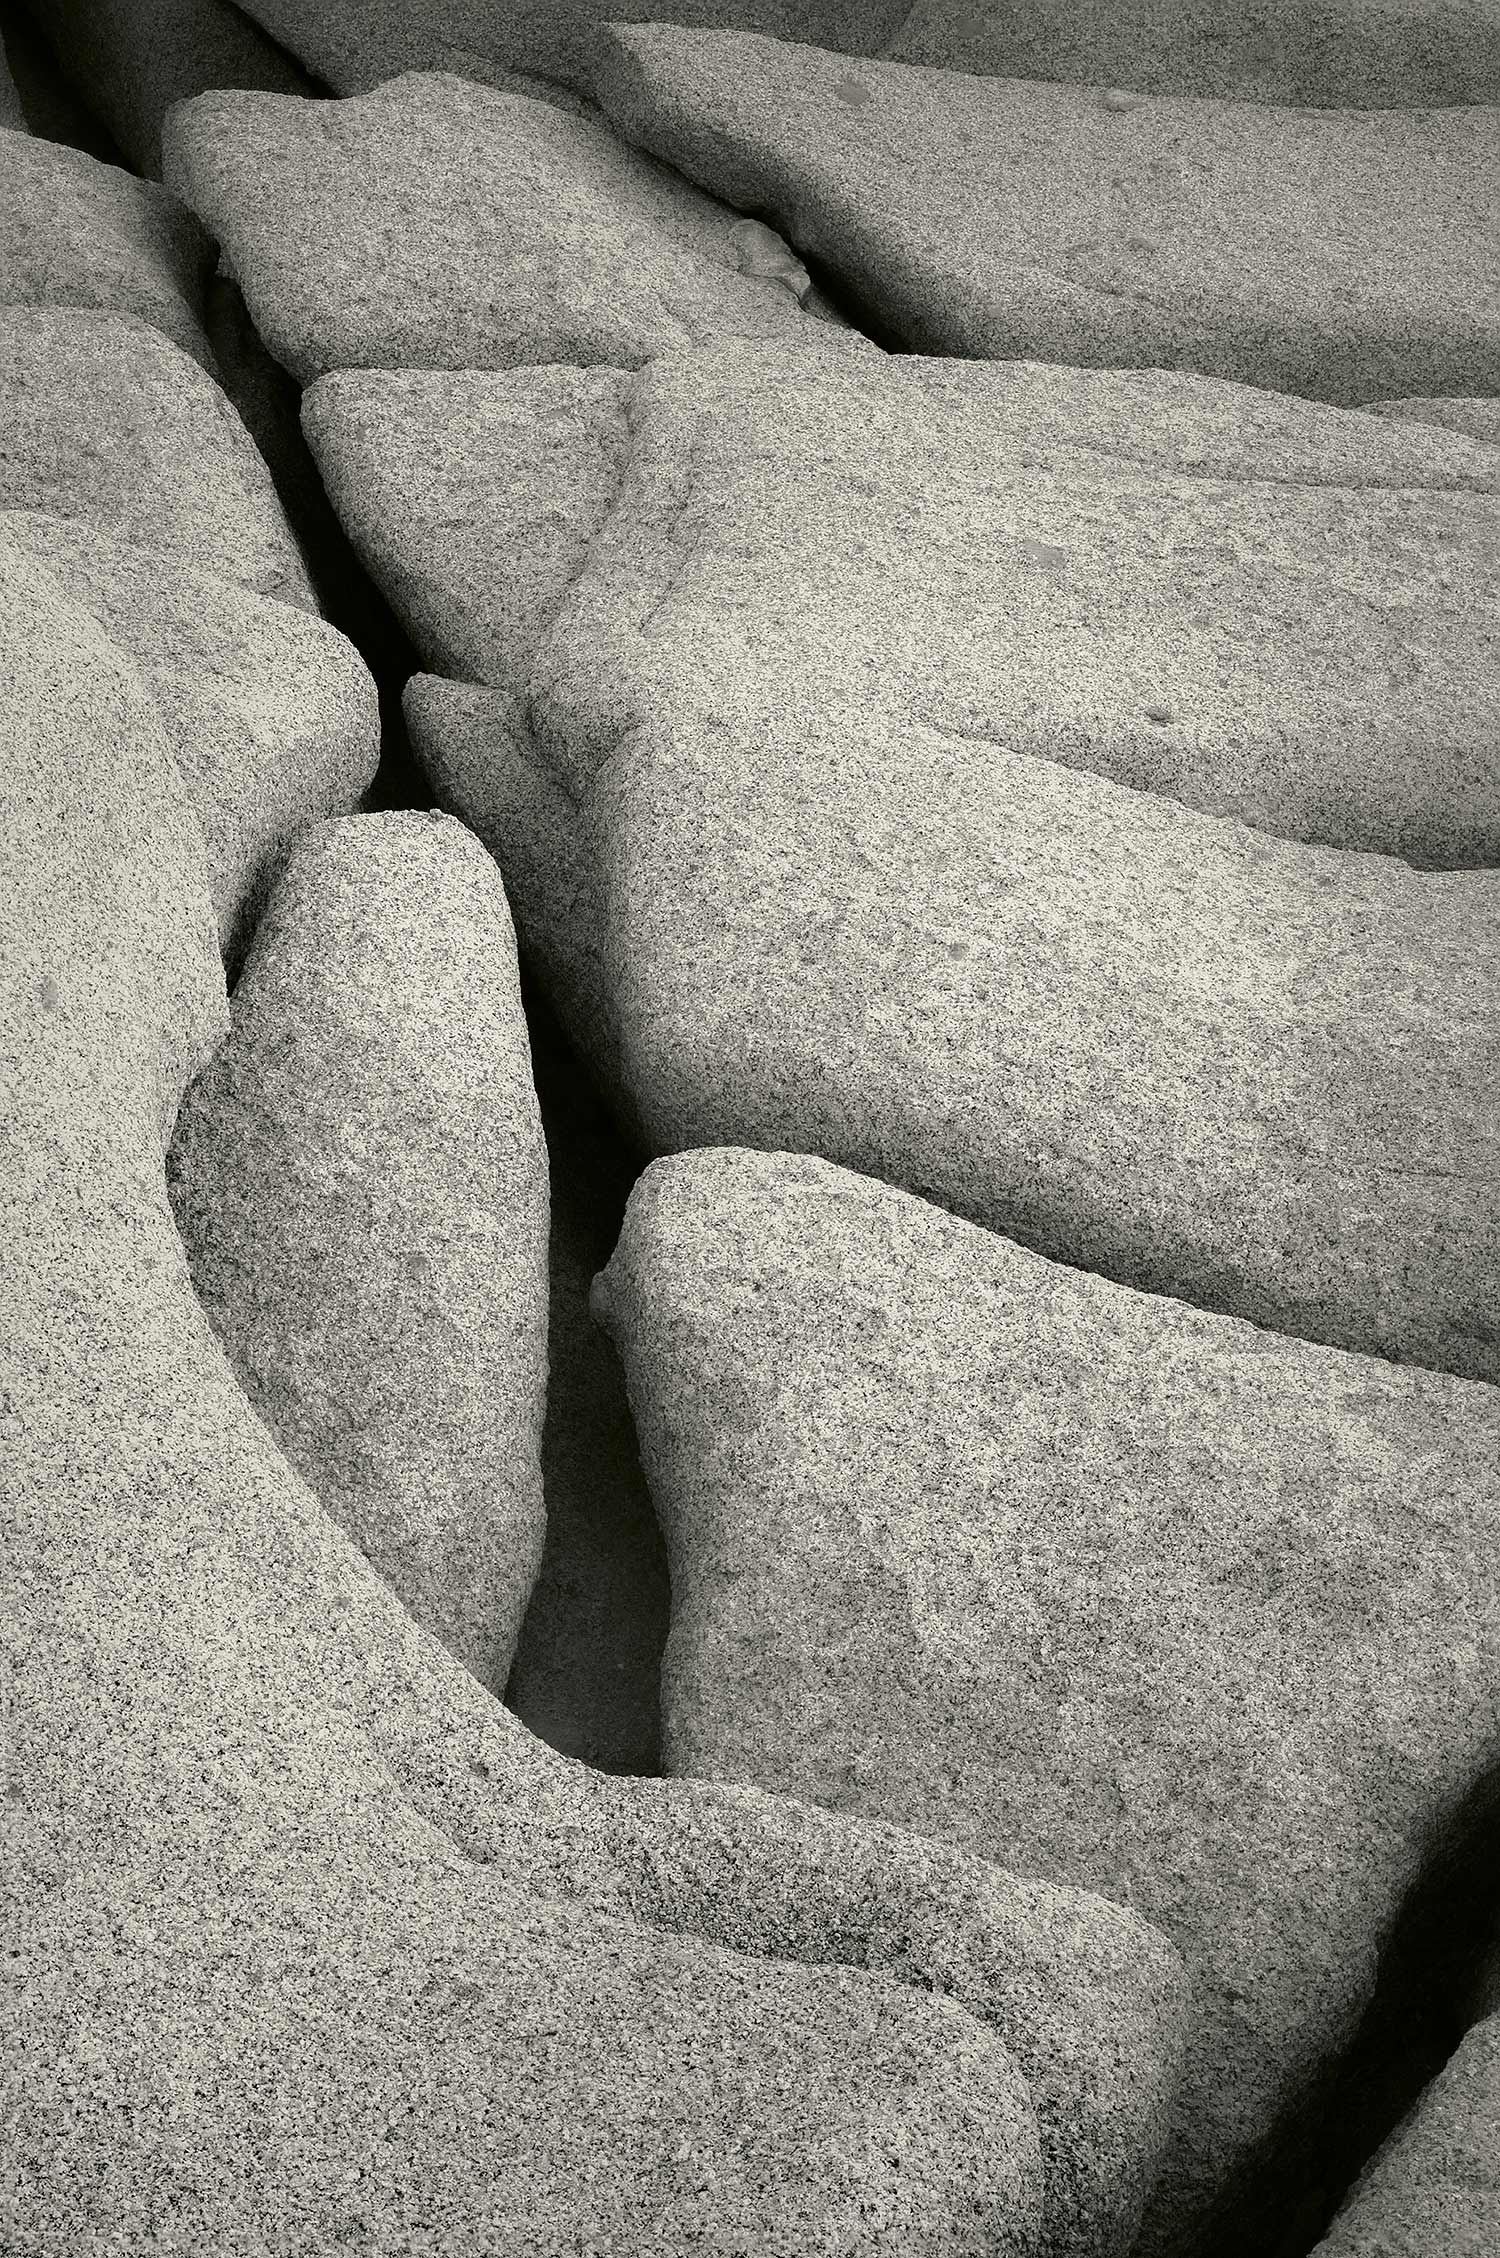 Rocks, Acadia National Park, Maine, 2013